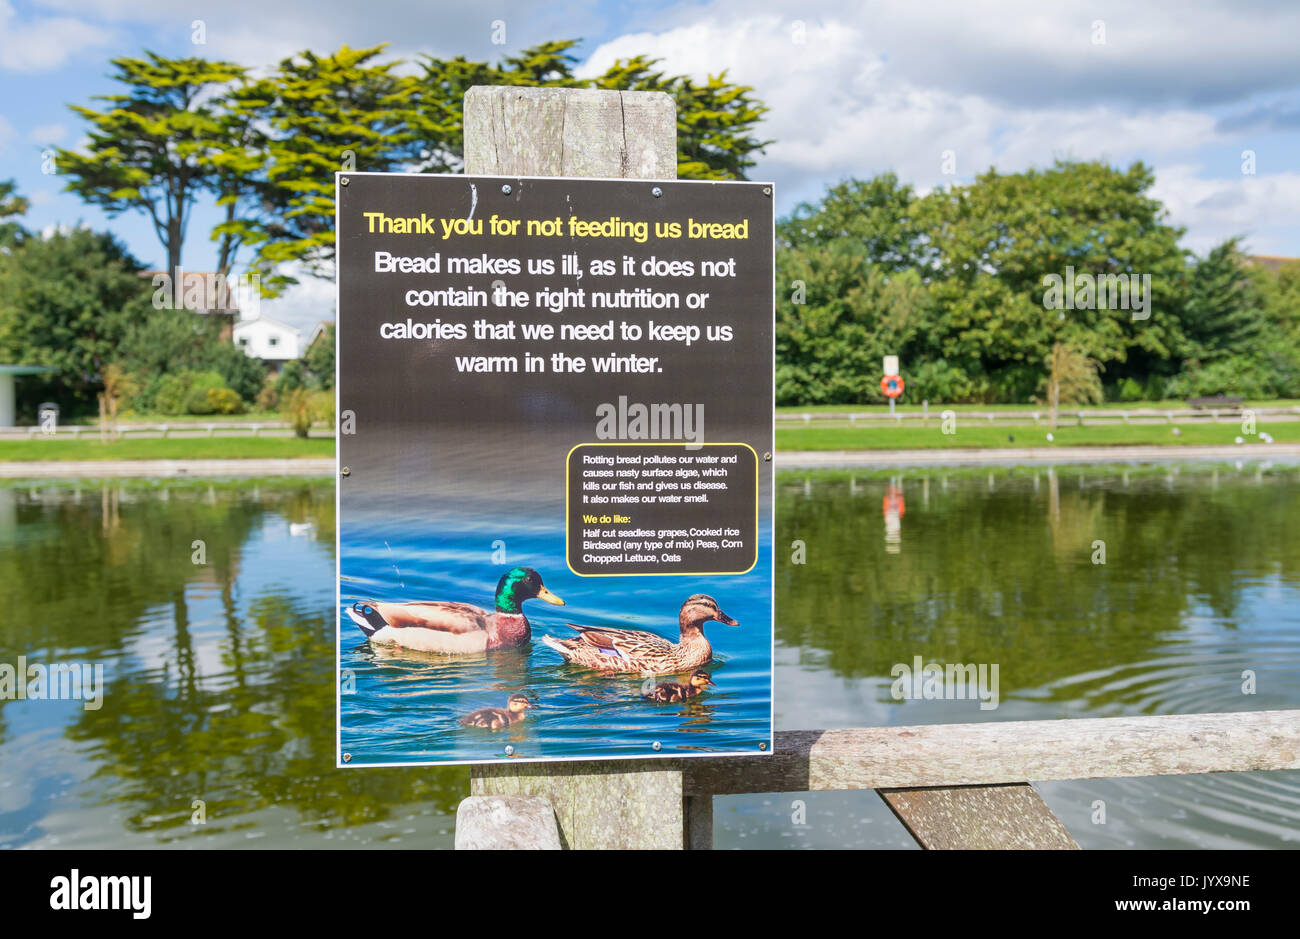 Sign at a lake asking people not to feed bread to ducks, as it makes them ill. Stock Photo